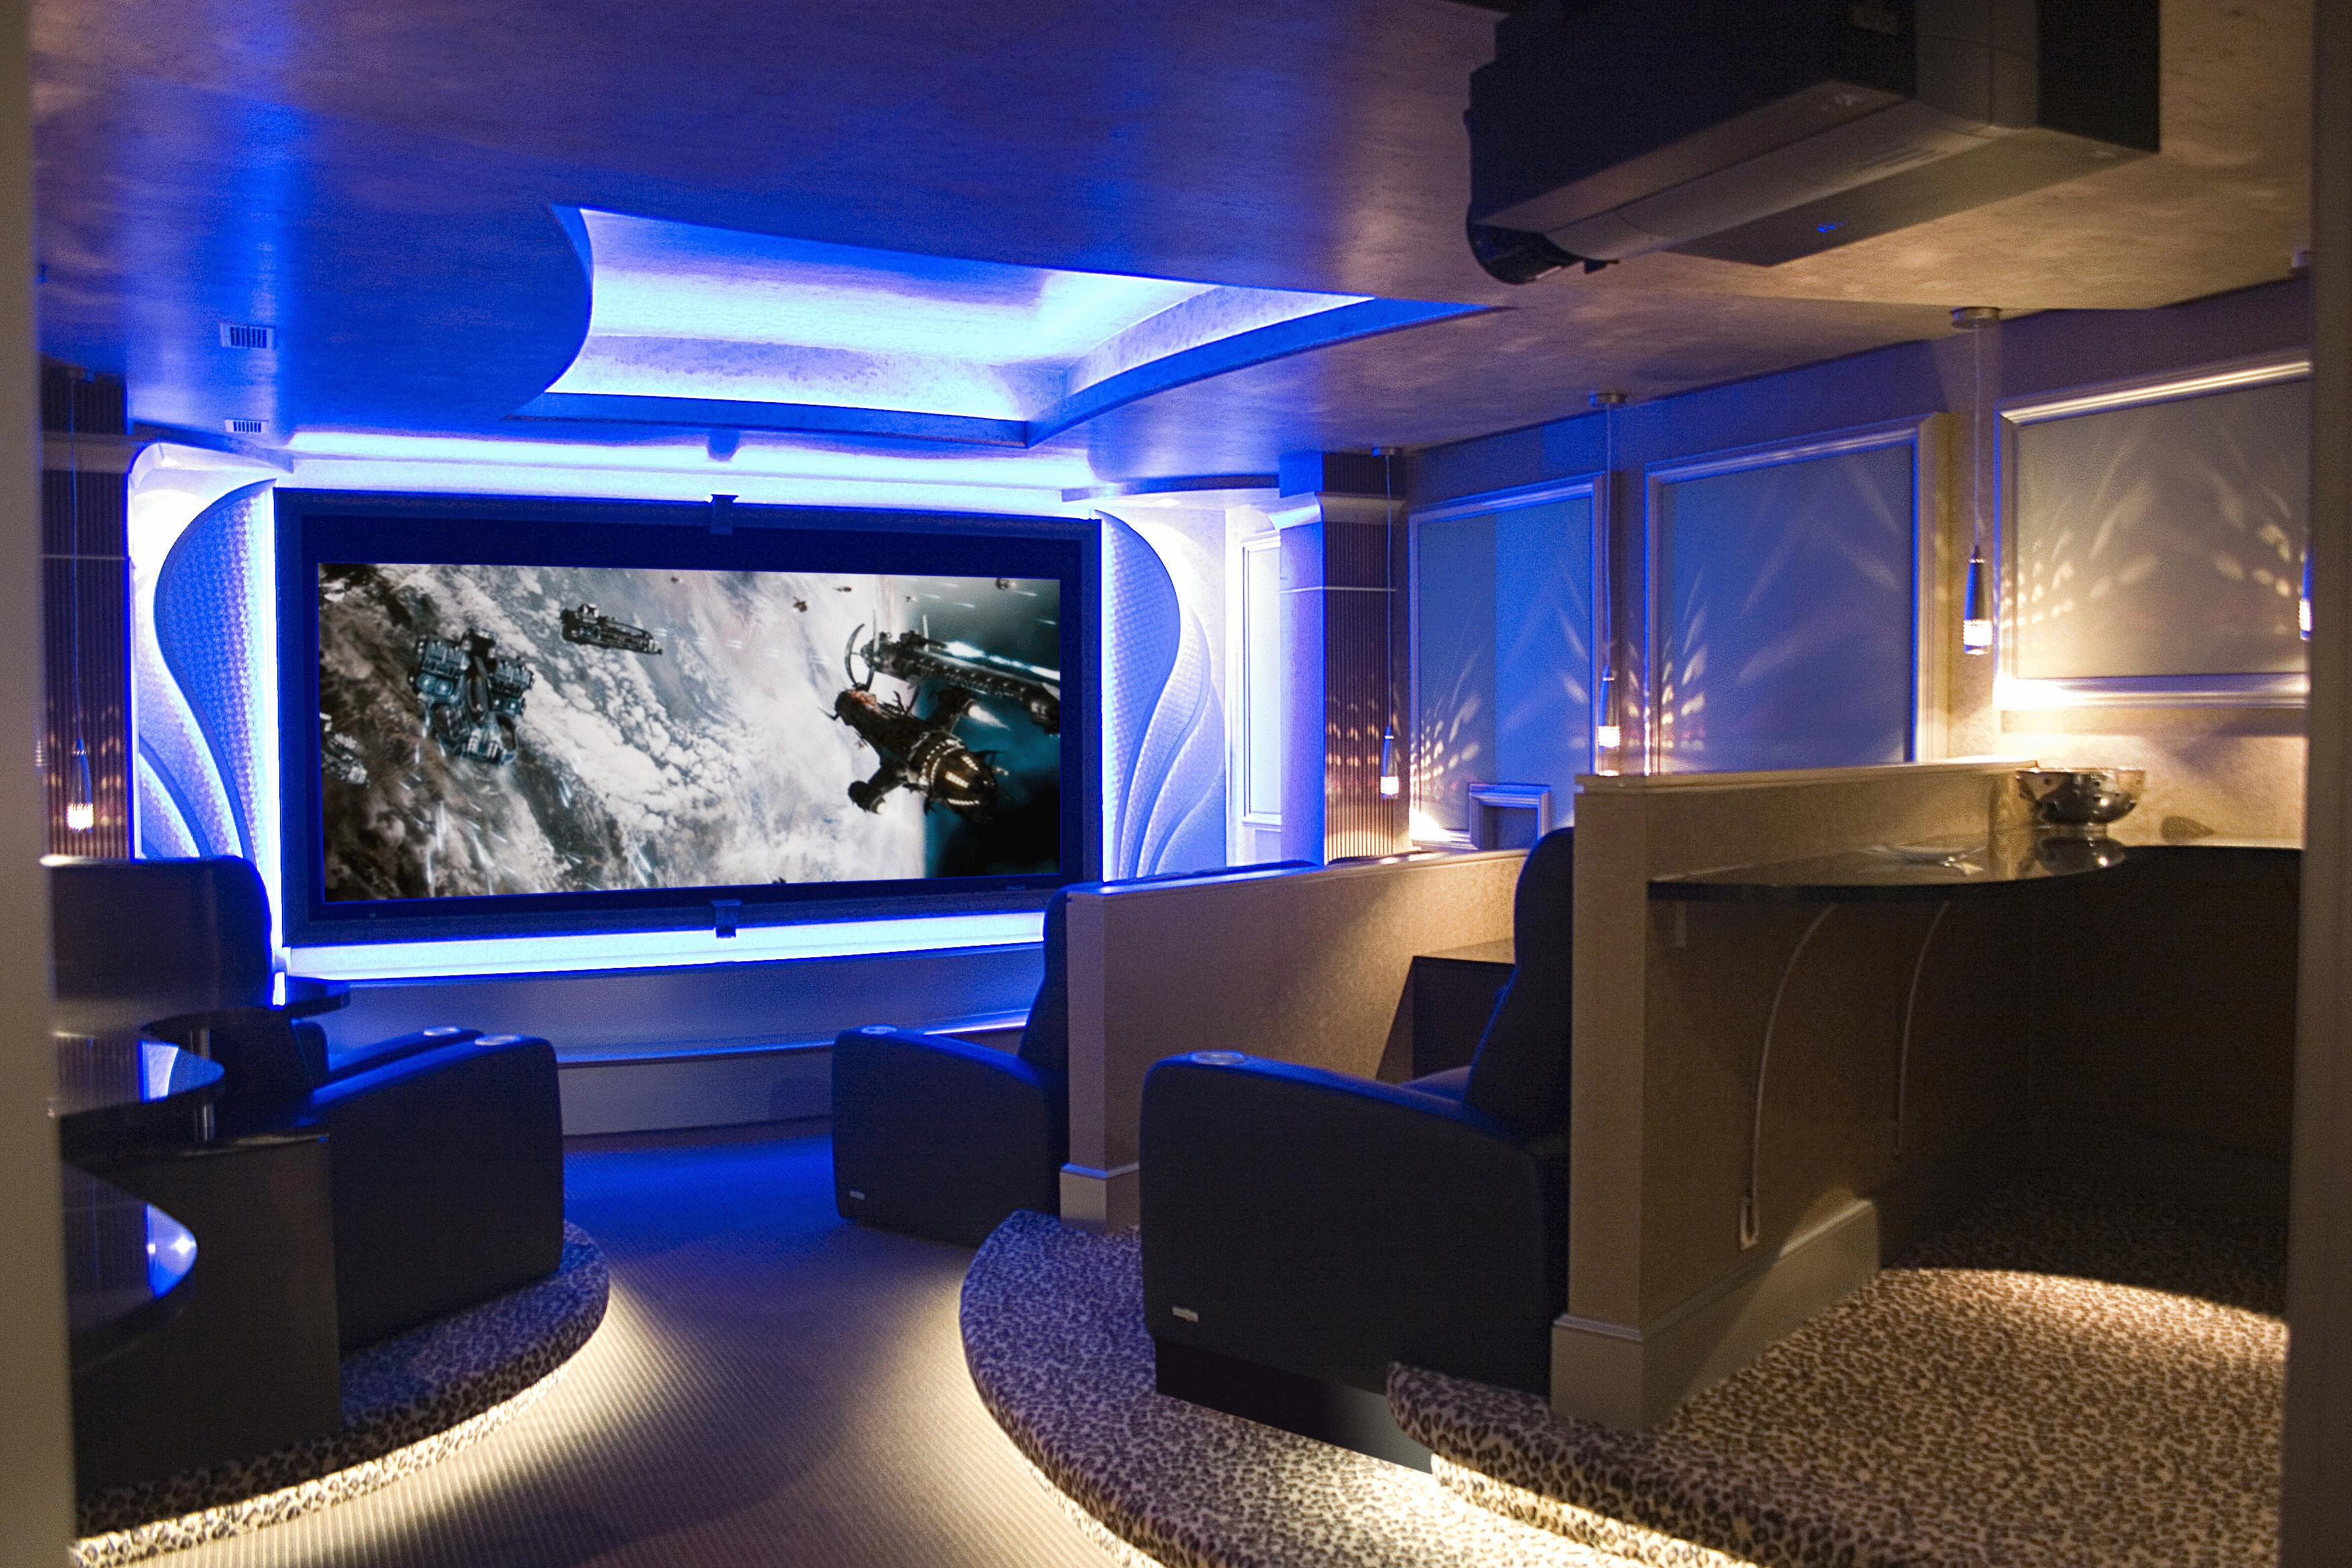 Advancements in home theater audio birmingham whole house audio video systems Modern home theater design ideas